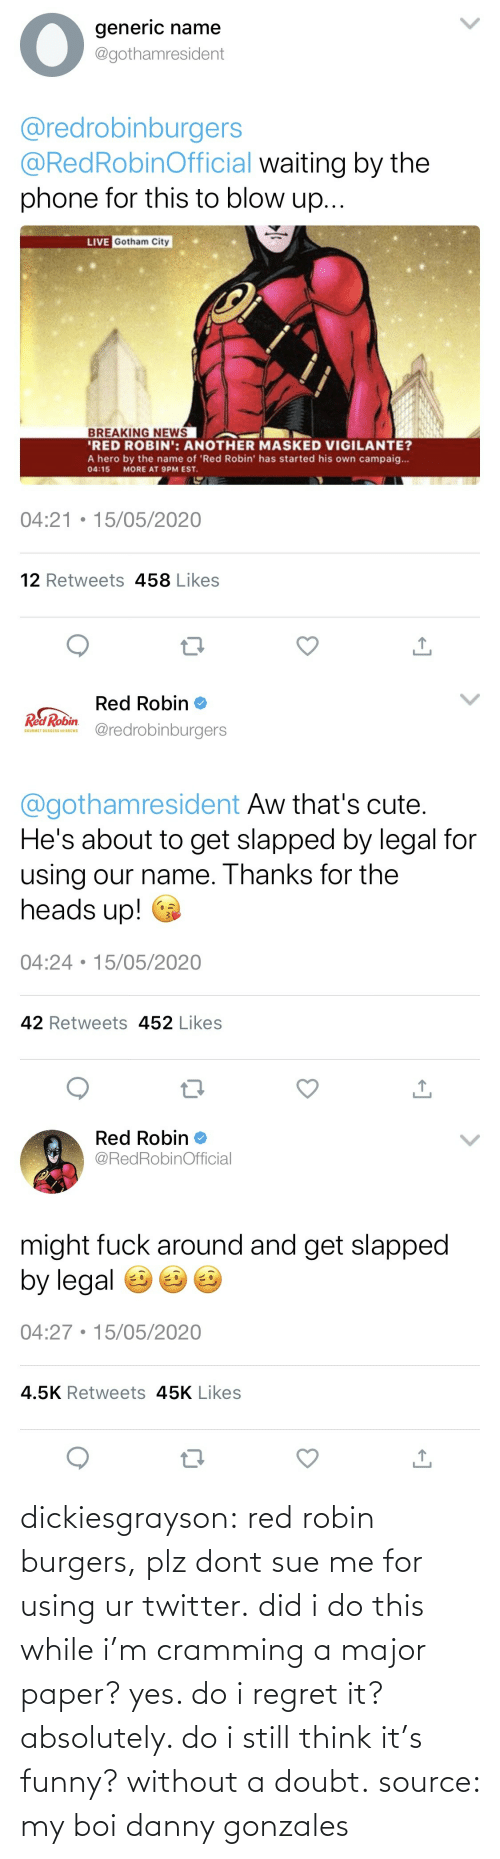 Doubt: dickiesgrayson:  red robin burgers, plz dont sue me for using ur twitter. did i do this while i'm cramming a major paper? yes. do i regret it? absolutely. do i still think it's funny? without a doubt. source: my boi danny gonzales